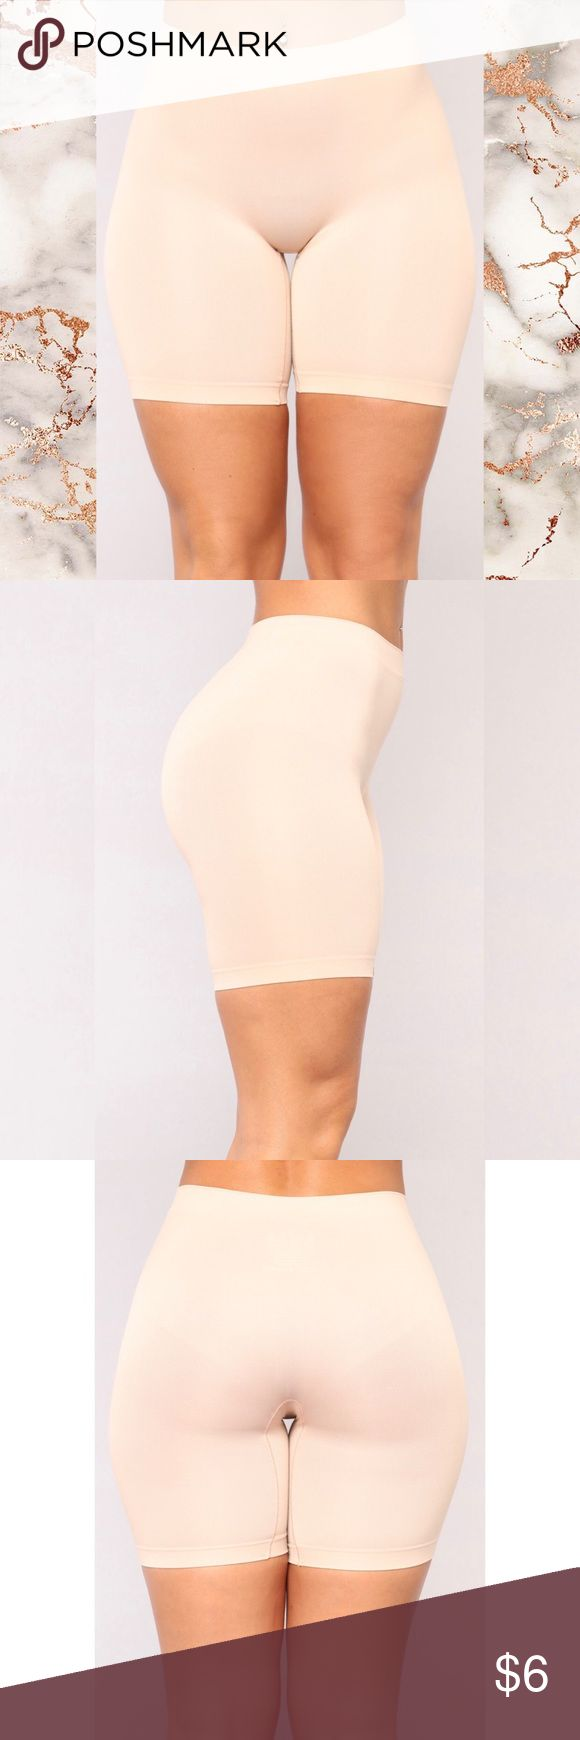 Feeling Great Fashion Nova Shapewear Biker Shorts NWOT. Came in a package with a...